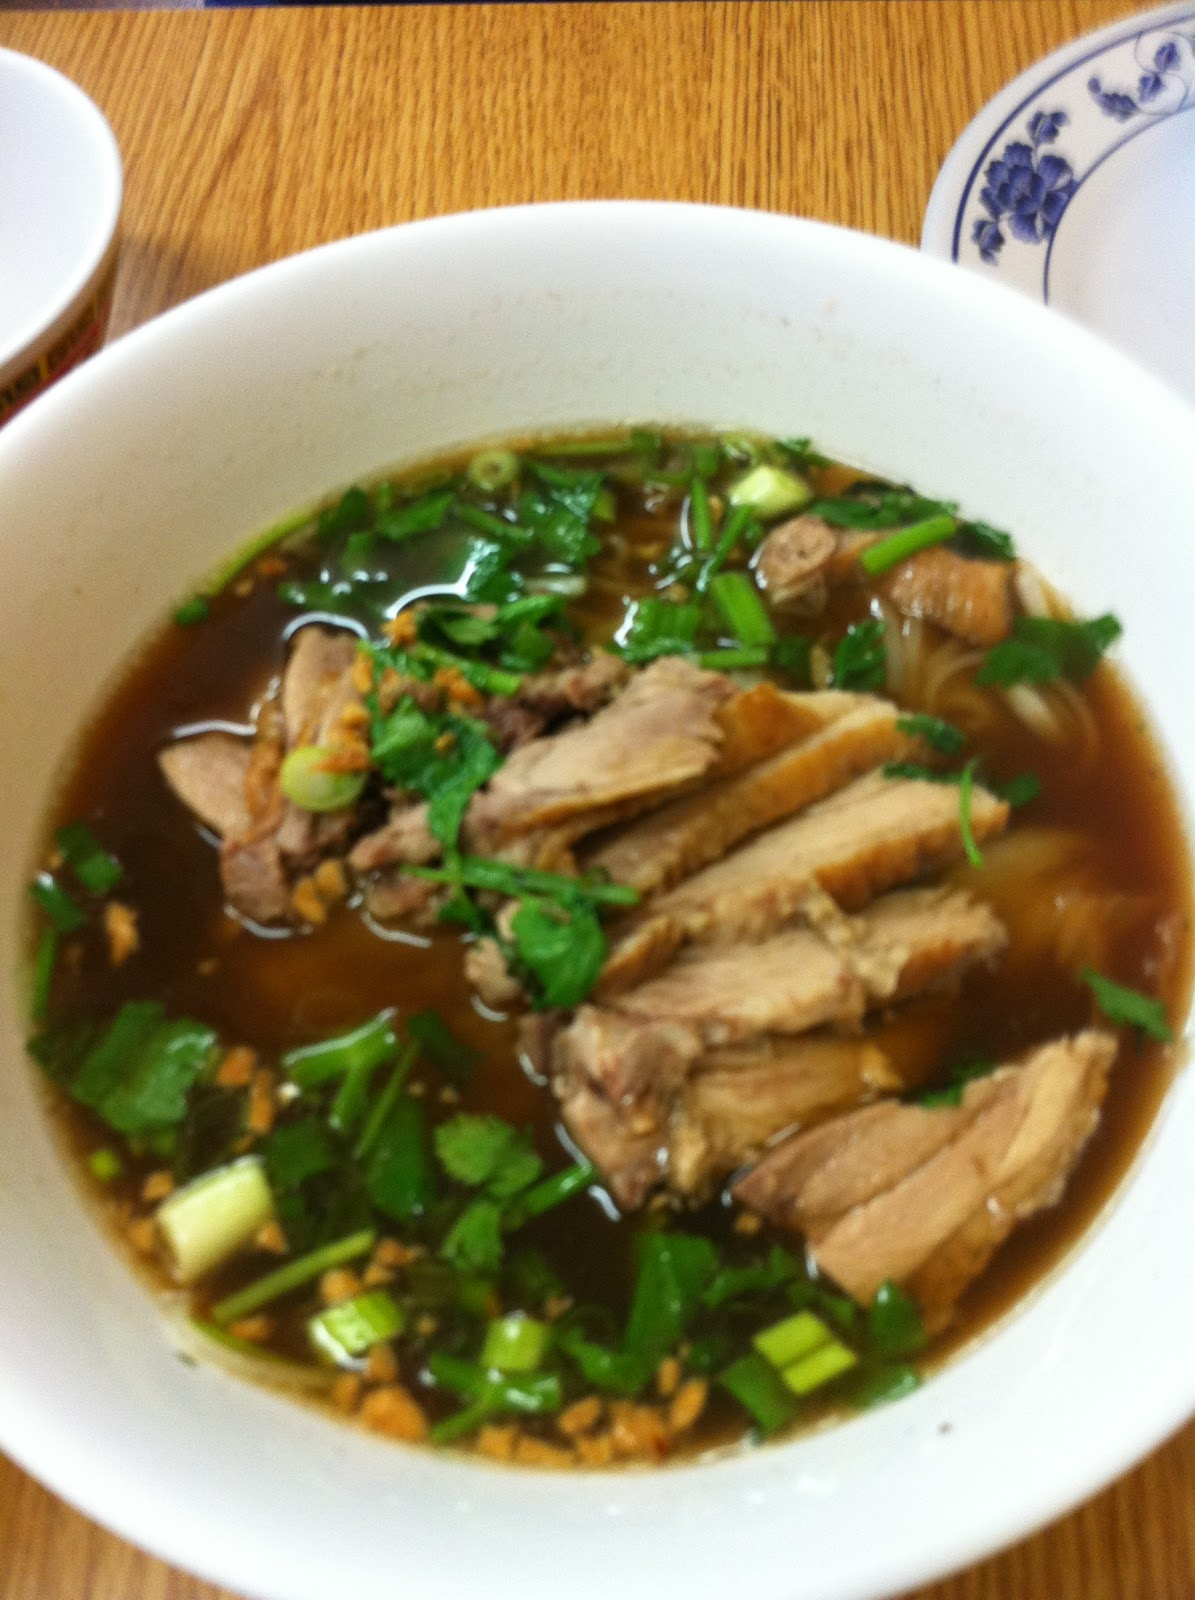 ... Food Heaven: Organ Rich Soup, Anyone?? Beef Noodle Soup in Thai Town